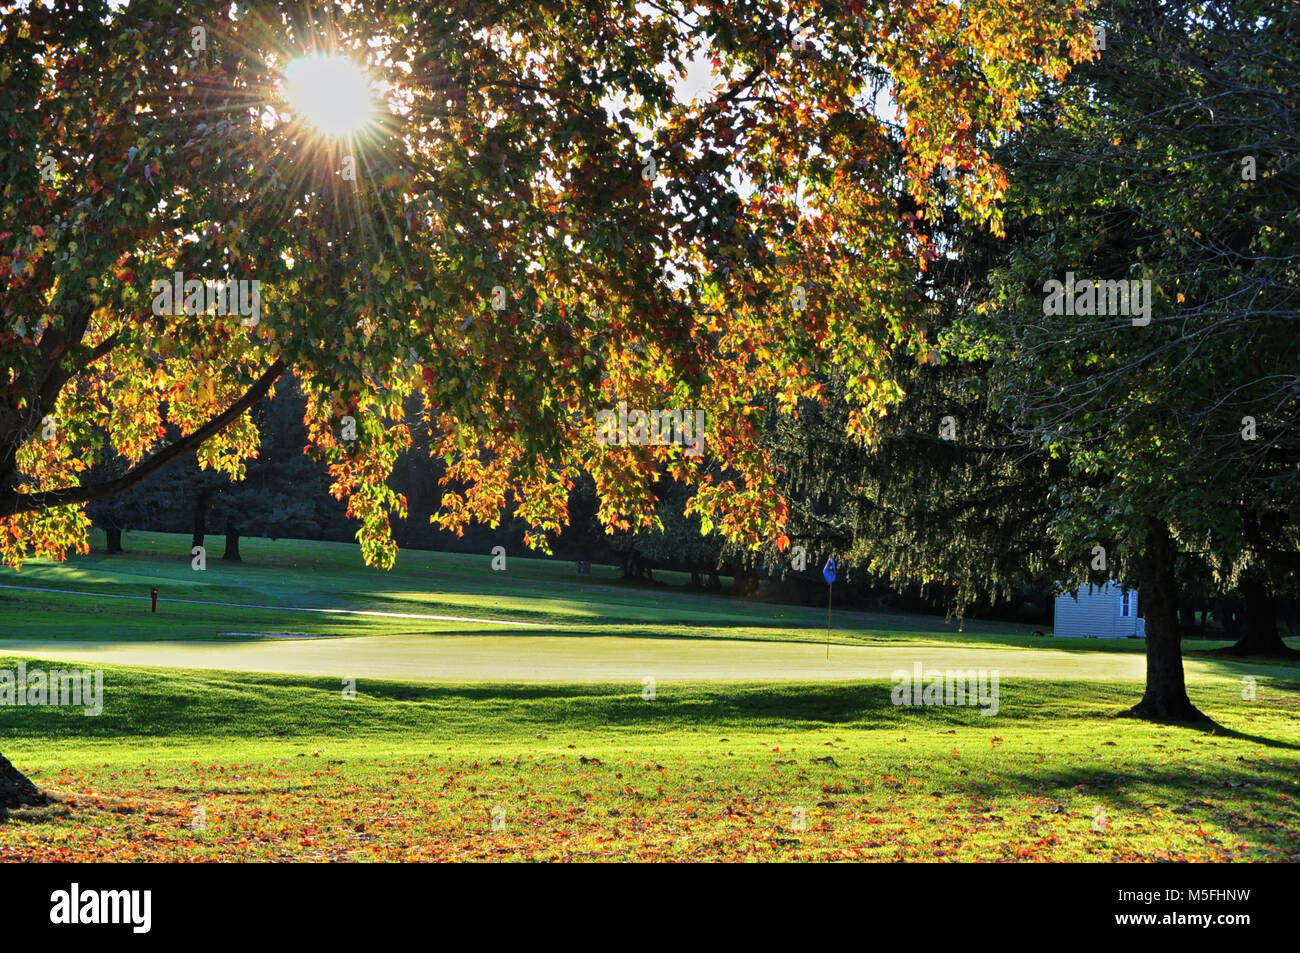 Sun shinning through trees on the 9th hole at APG golf course - Stock Image